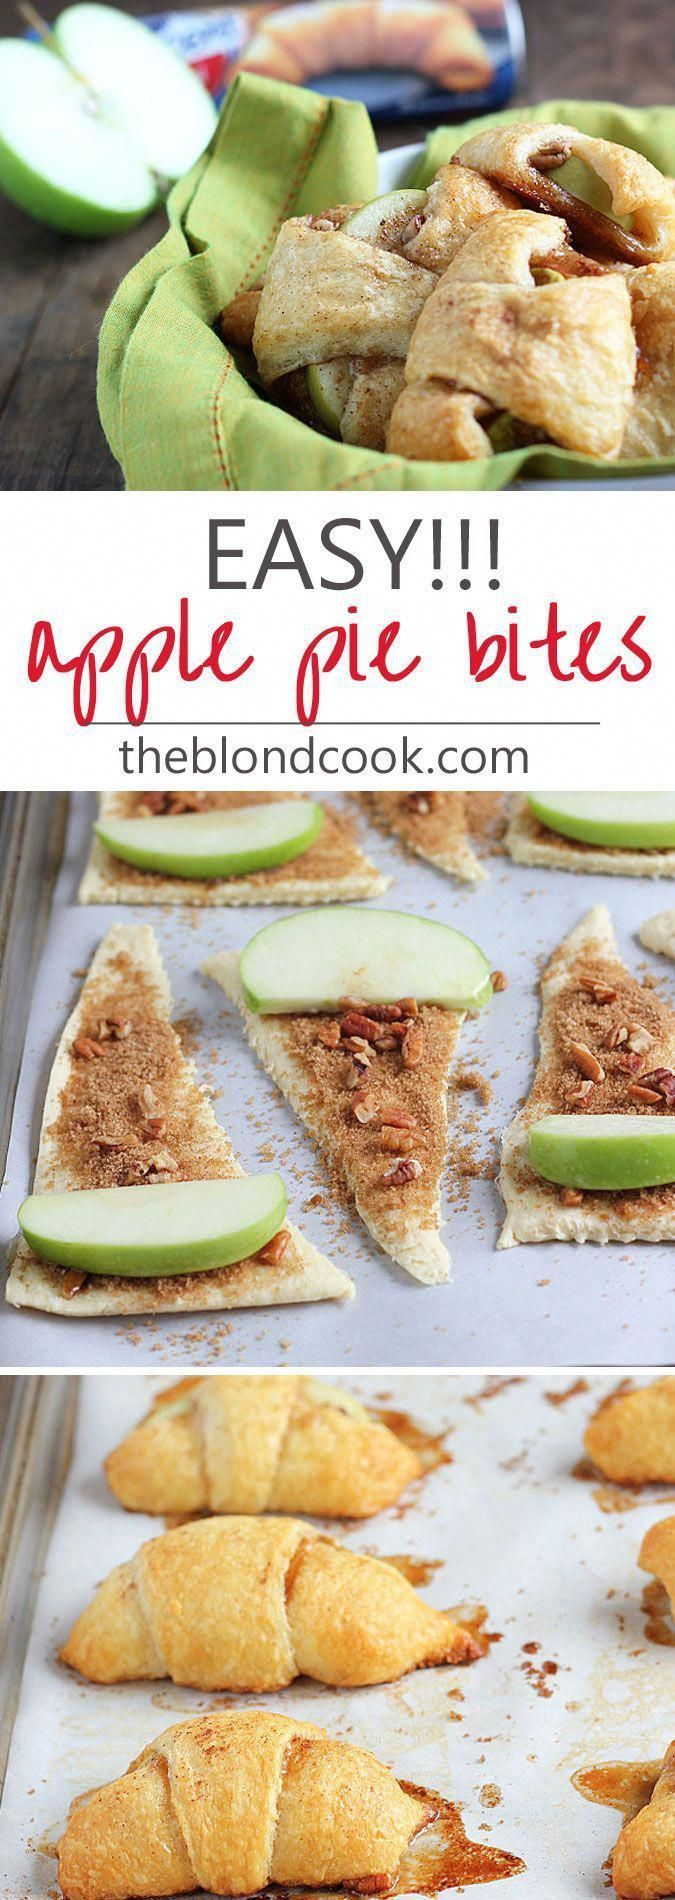 Photo of Apple Pie Bites | The Blond Cook  c r a v i n g s EASY Apple Pie Bites made with…